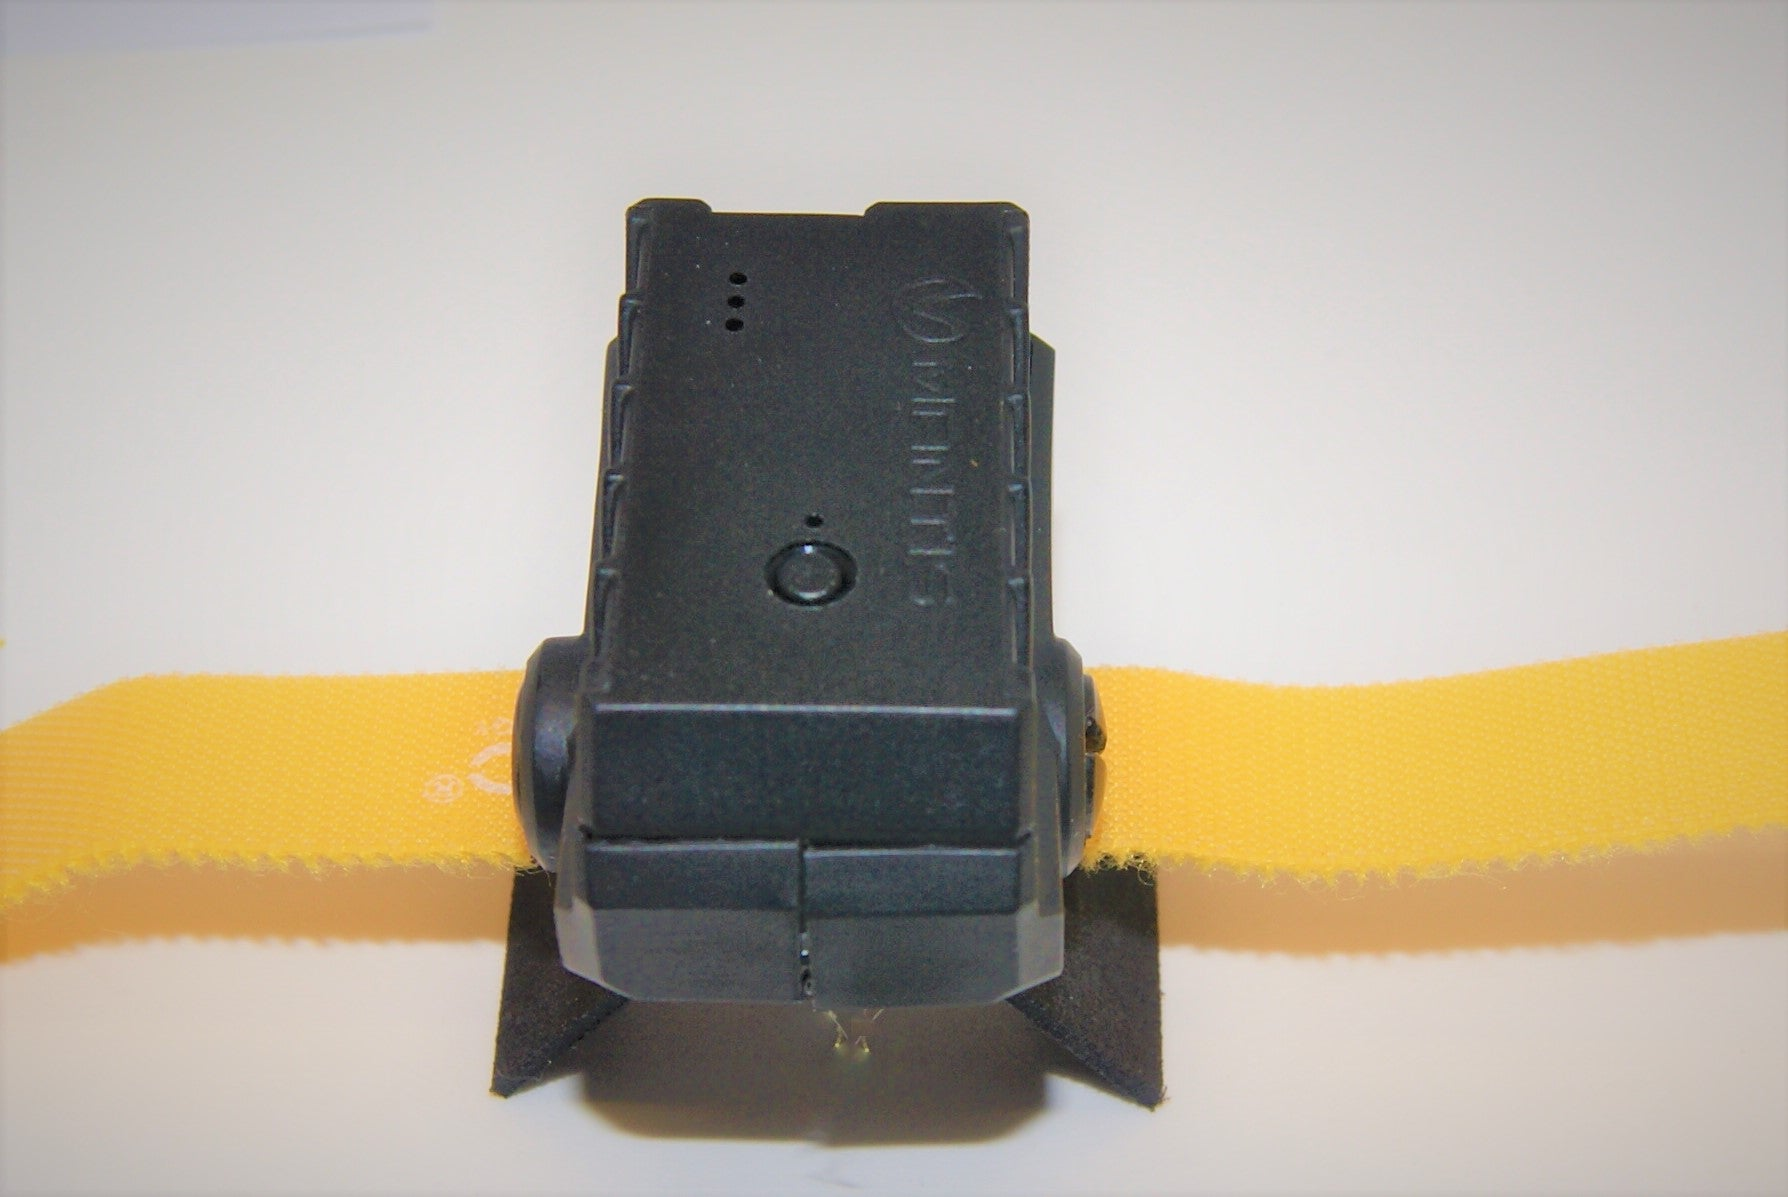 Xmount for MatisX senor on rifels and air rifles MantisX sensor with Xmount atached and yello valcro strap